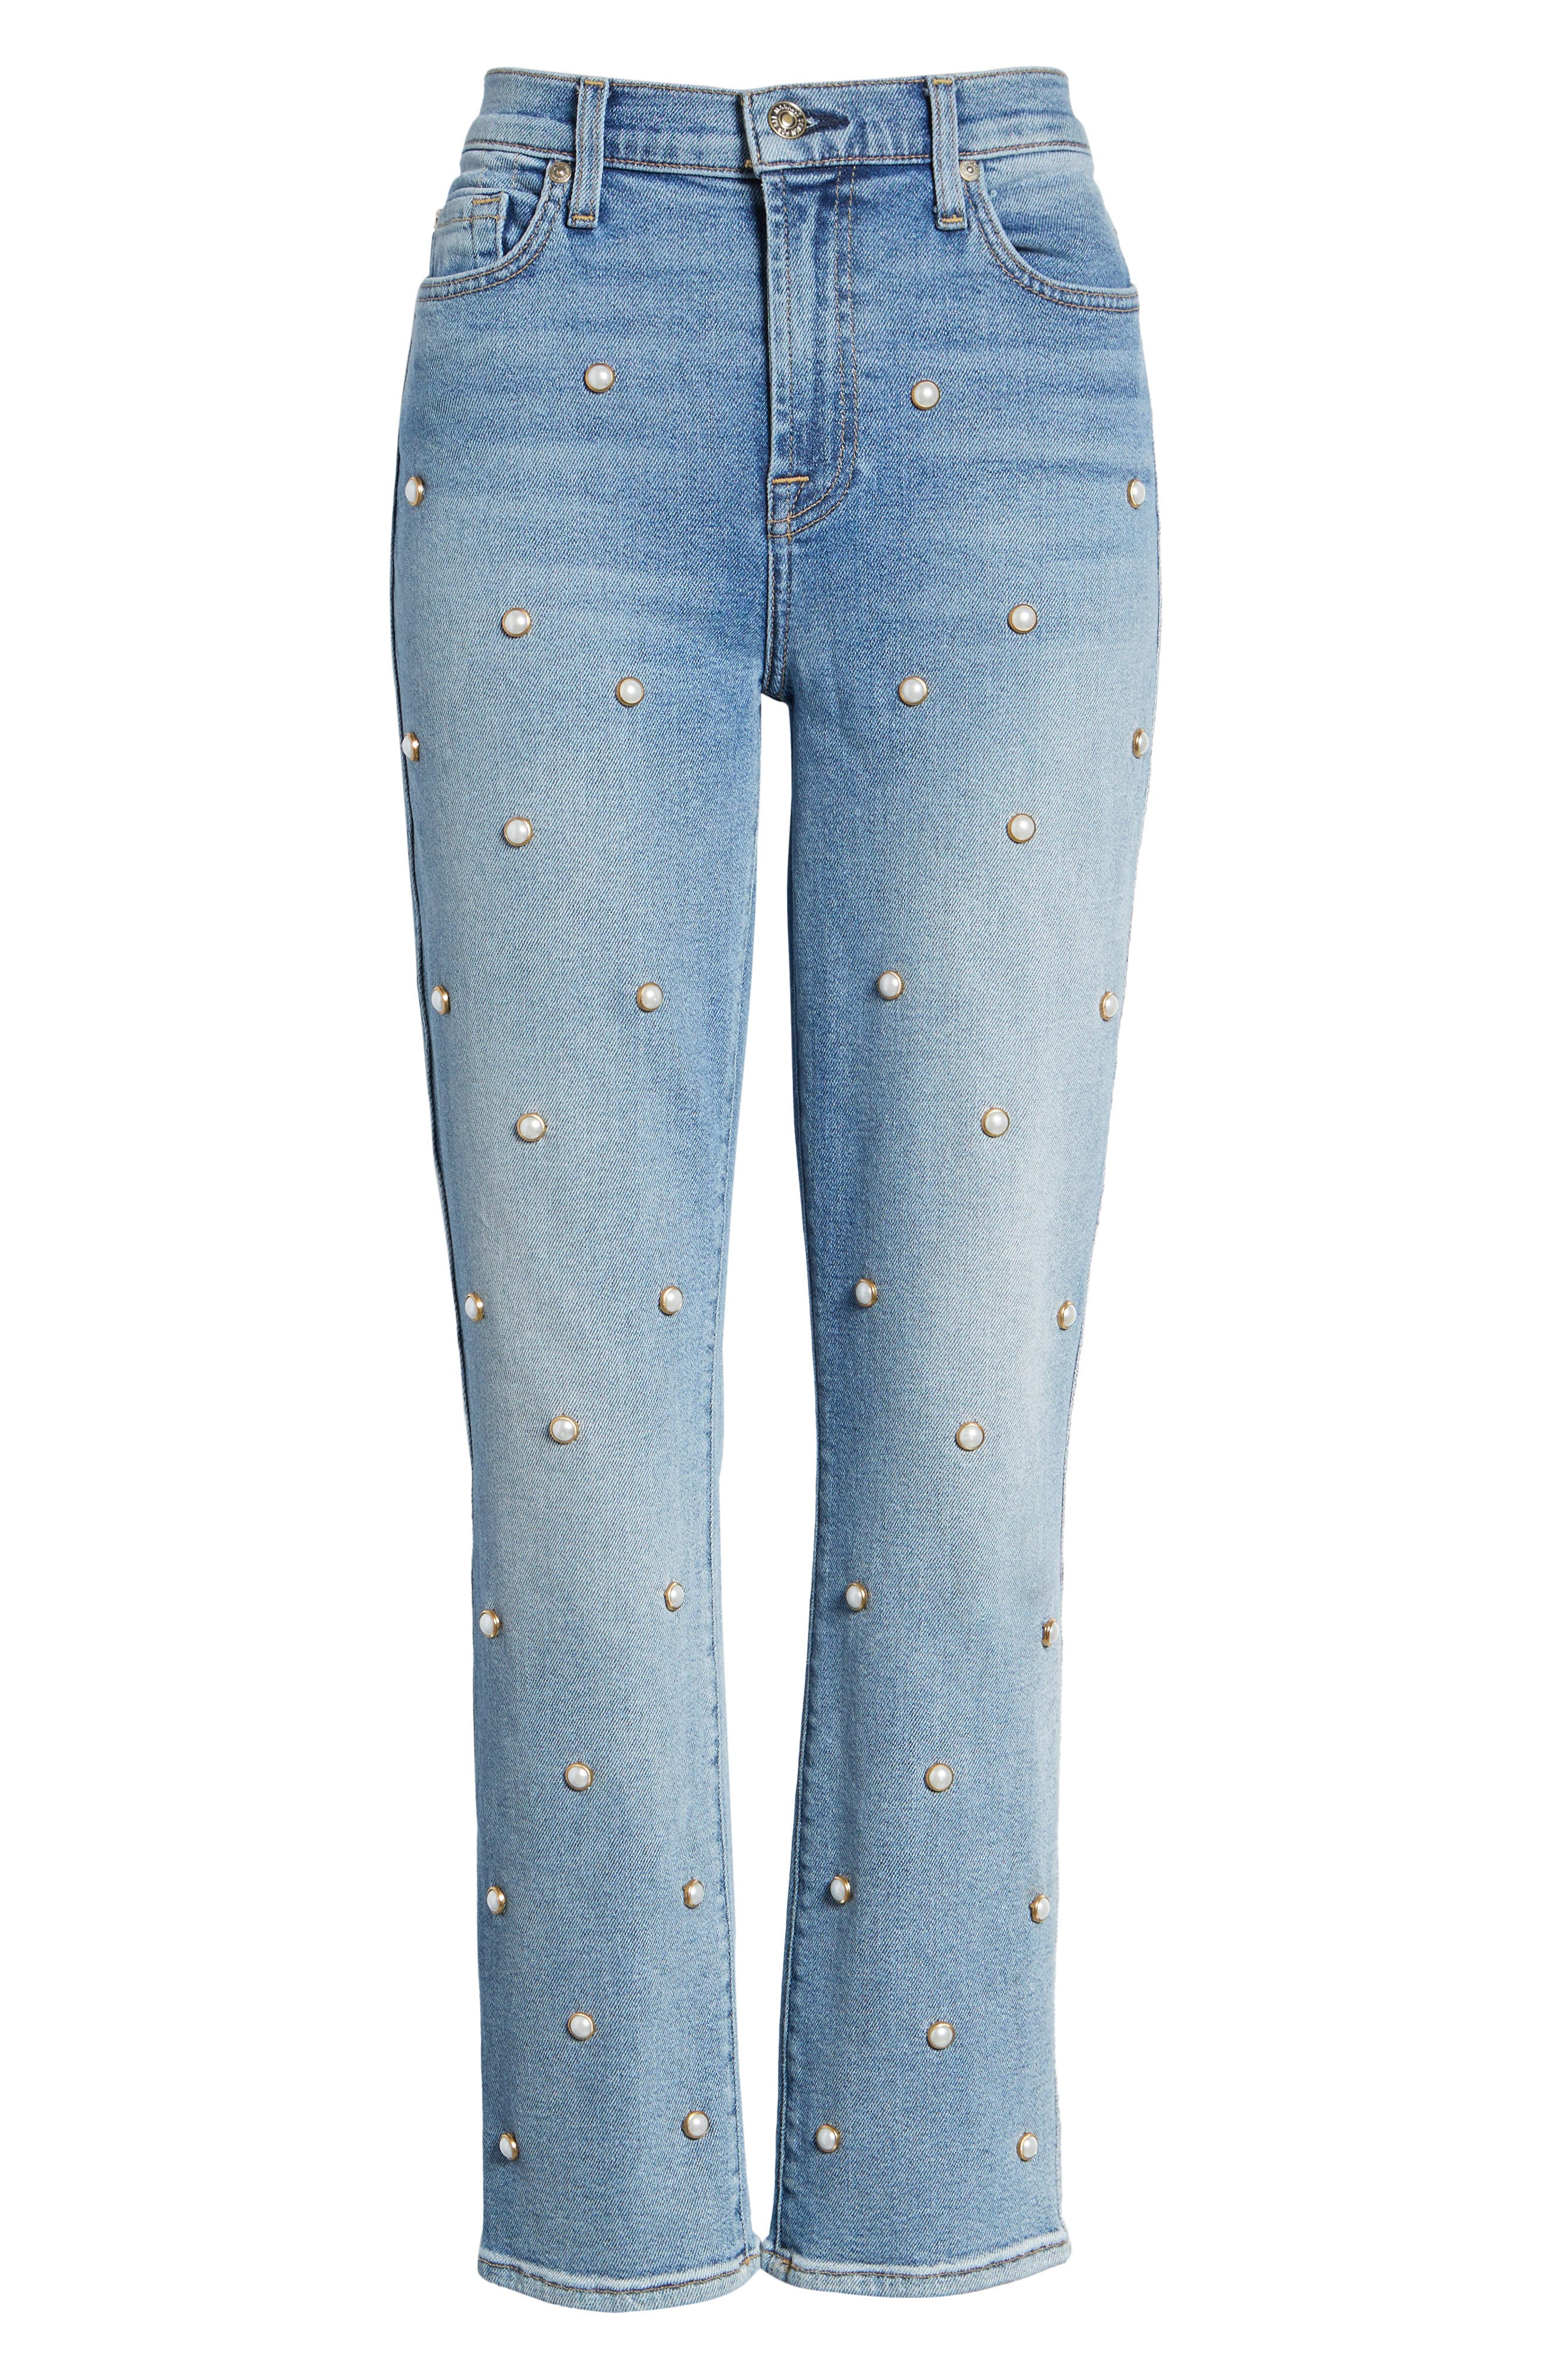 Edie Faux Pearl Detail Ankle Jeans,                             Alternate thumbnail 7, color,                             LUXE VINTAGE FLORA